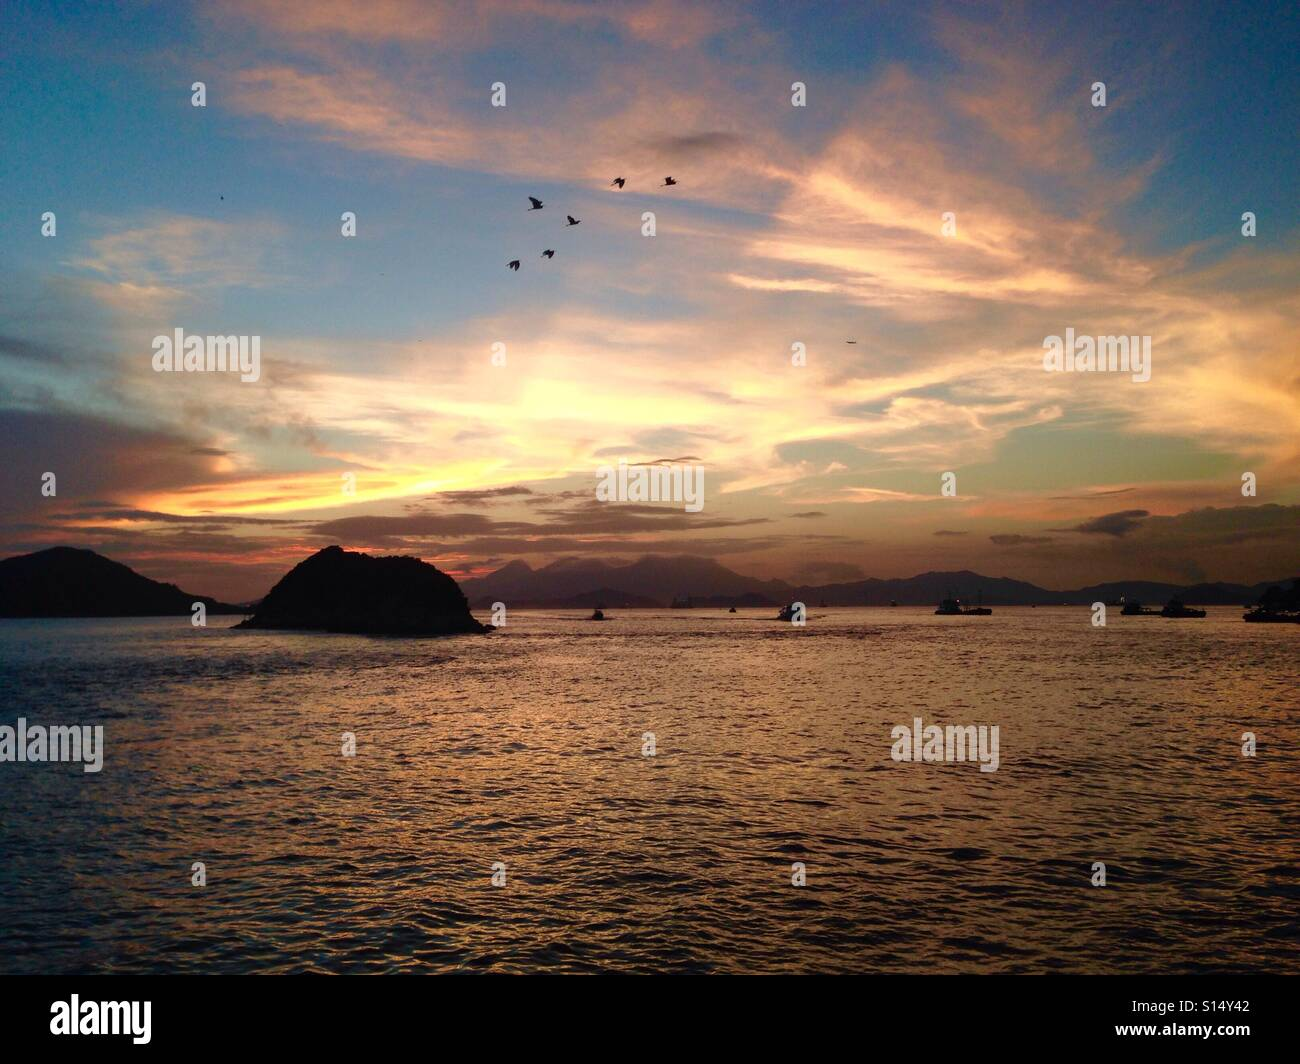 Beautiful sunset over the South China Sea in Hong Kong. Stock Photo